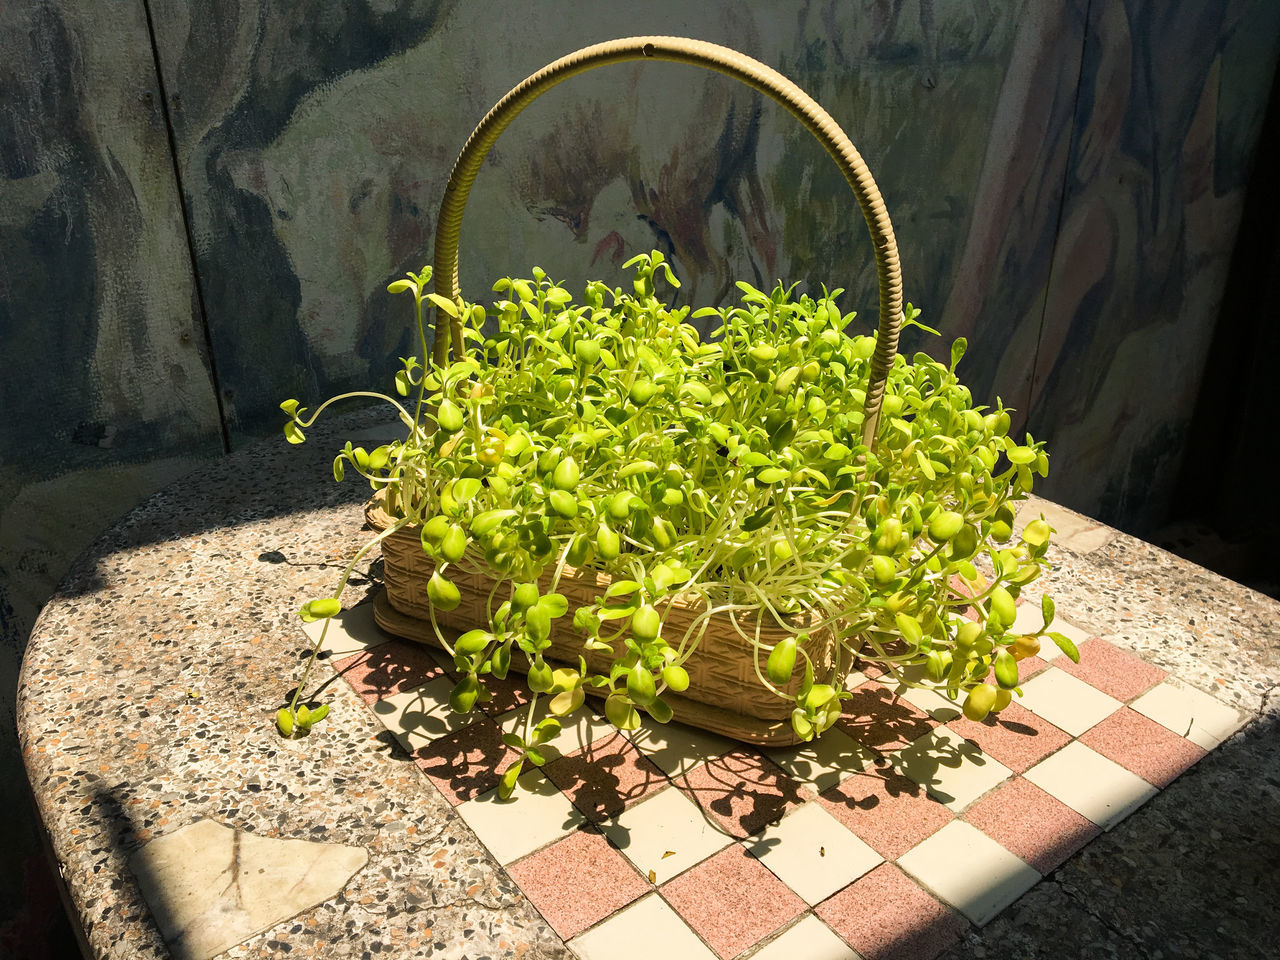 plant, nature, sunlight, growth, no people, green color, day, freshness, outdoors, potted plant, shadow, food and drink, food, close-up, vegetable, leaf, wellbeing, plant part, container, high angle view, tiled floor